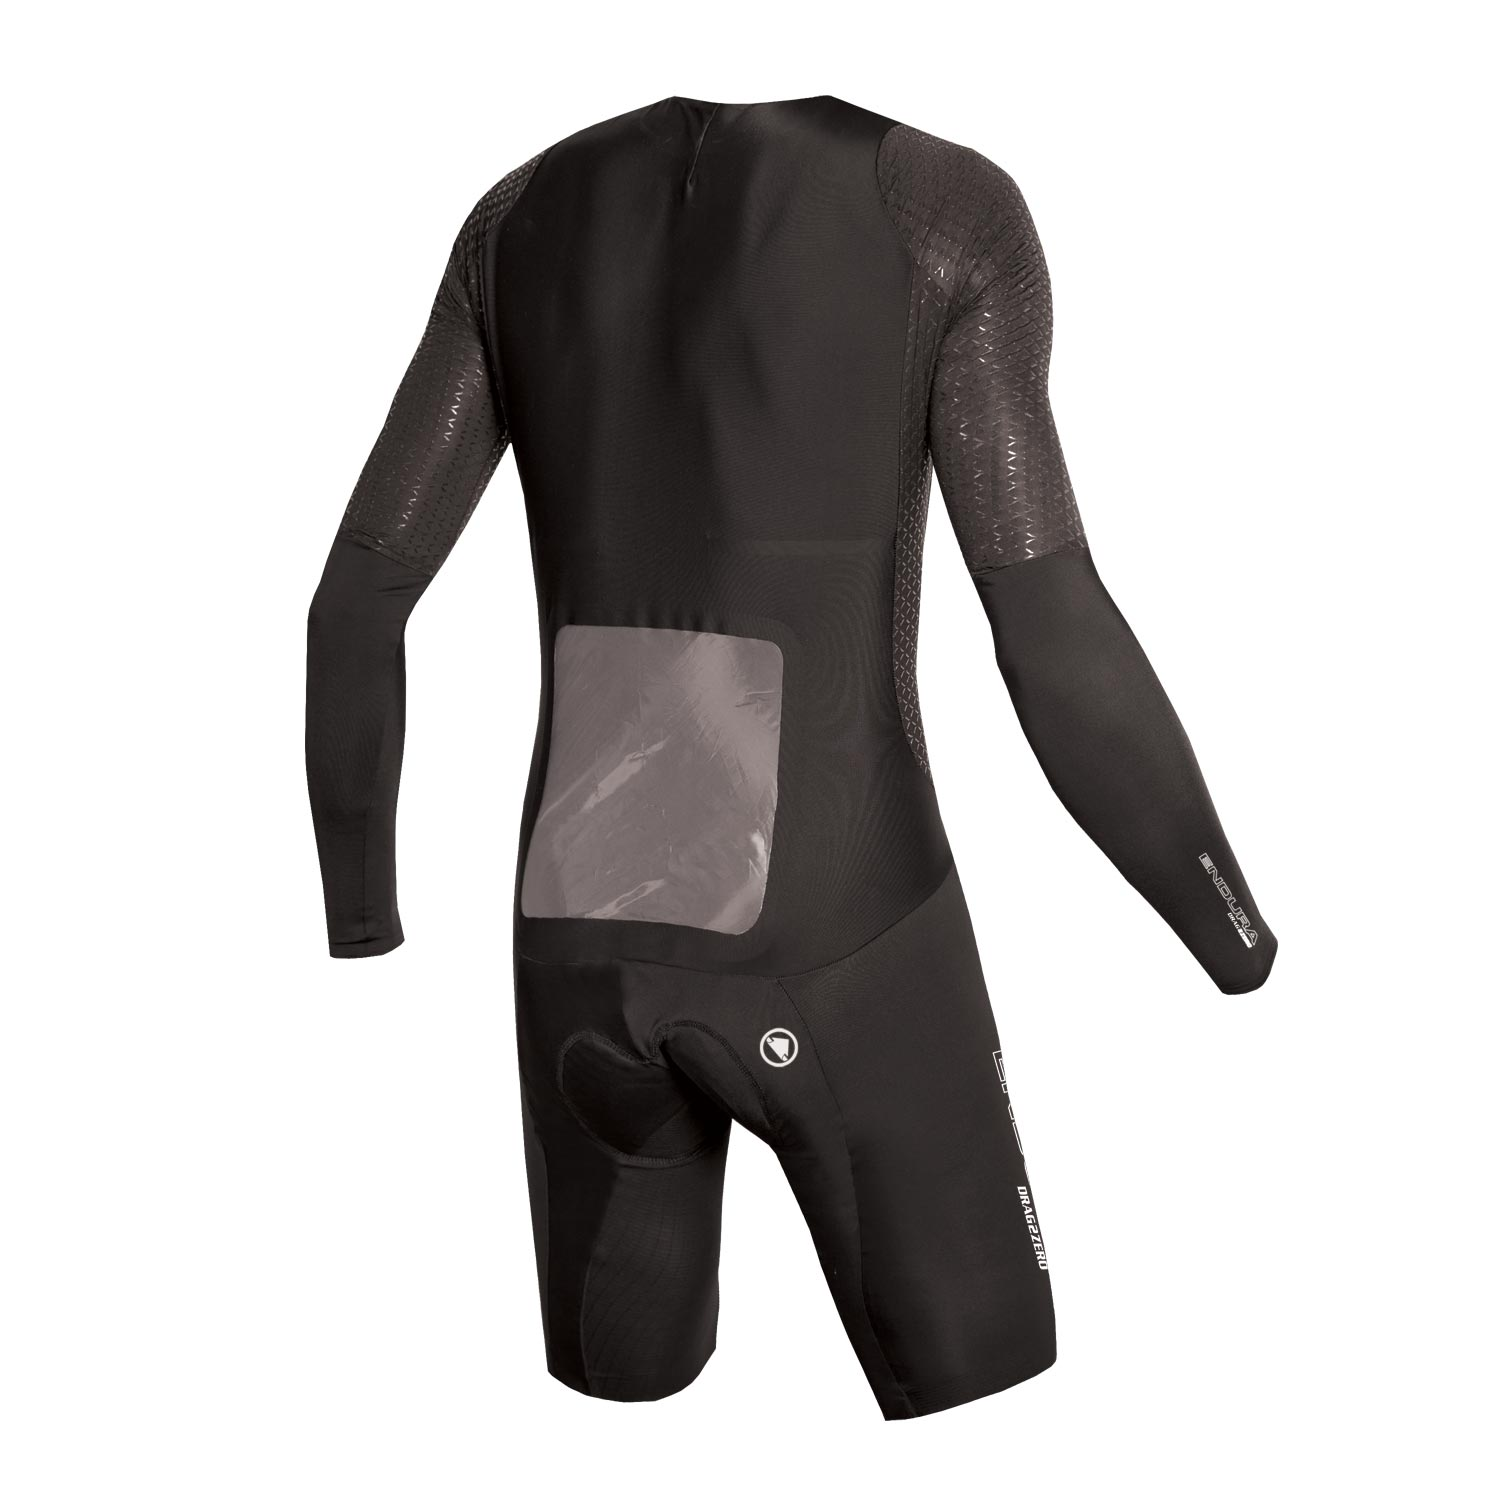 D2Z Encapsulator Suit SST Black